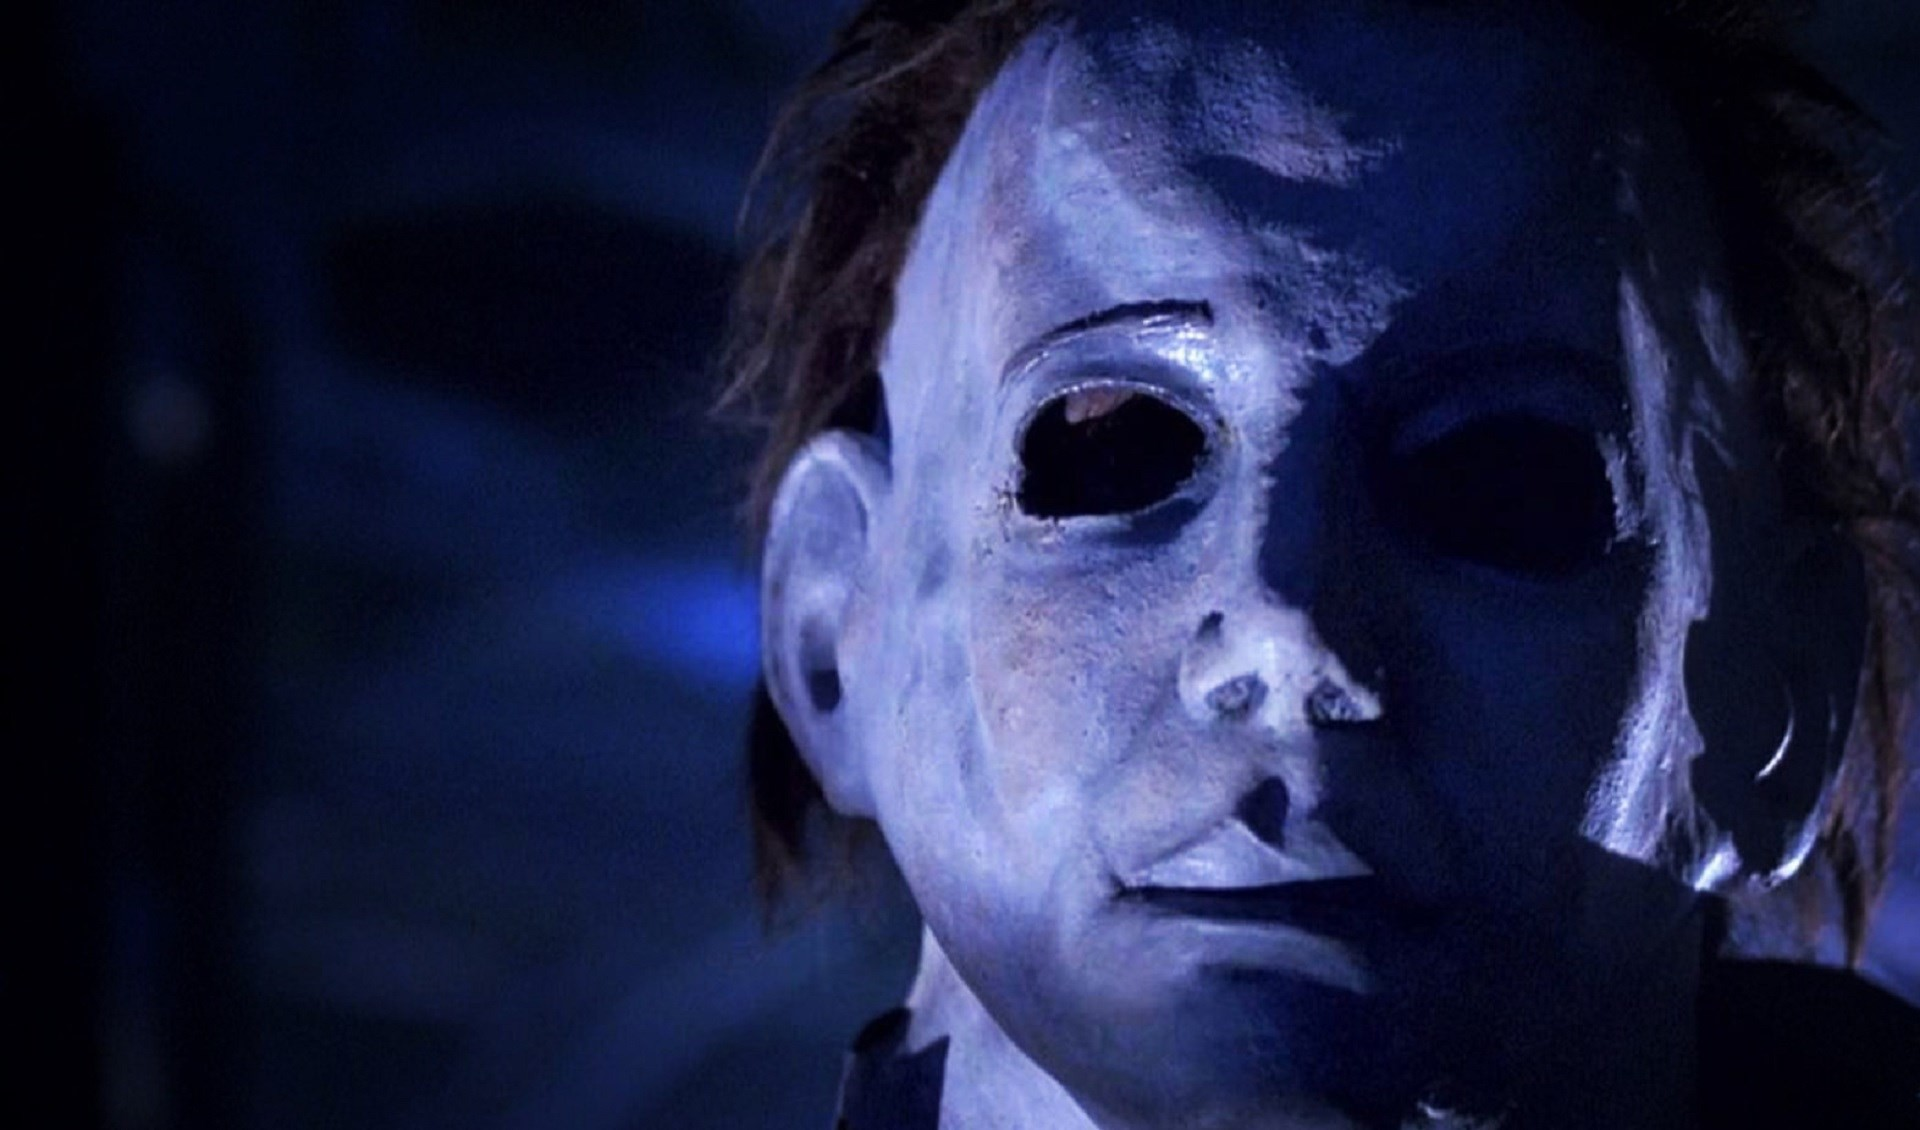 Jason Voorhees Mask Wallpaper Iphone Michael Myers Wallpapers 72 Images